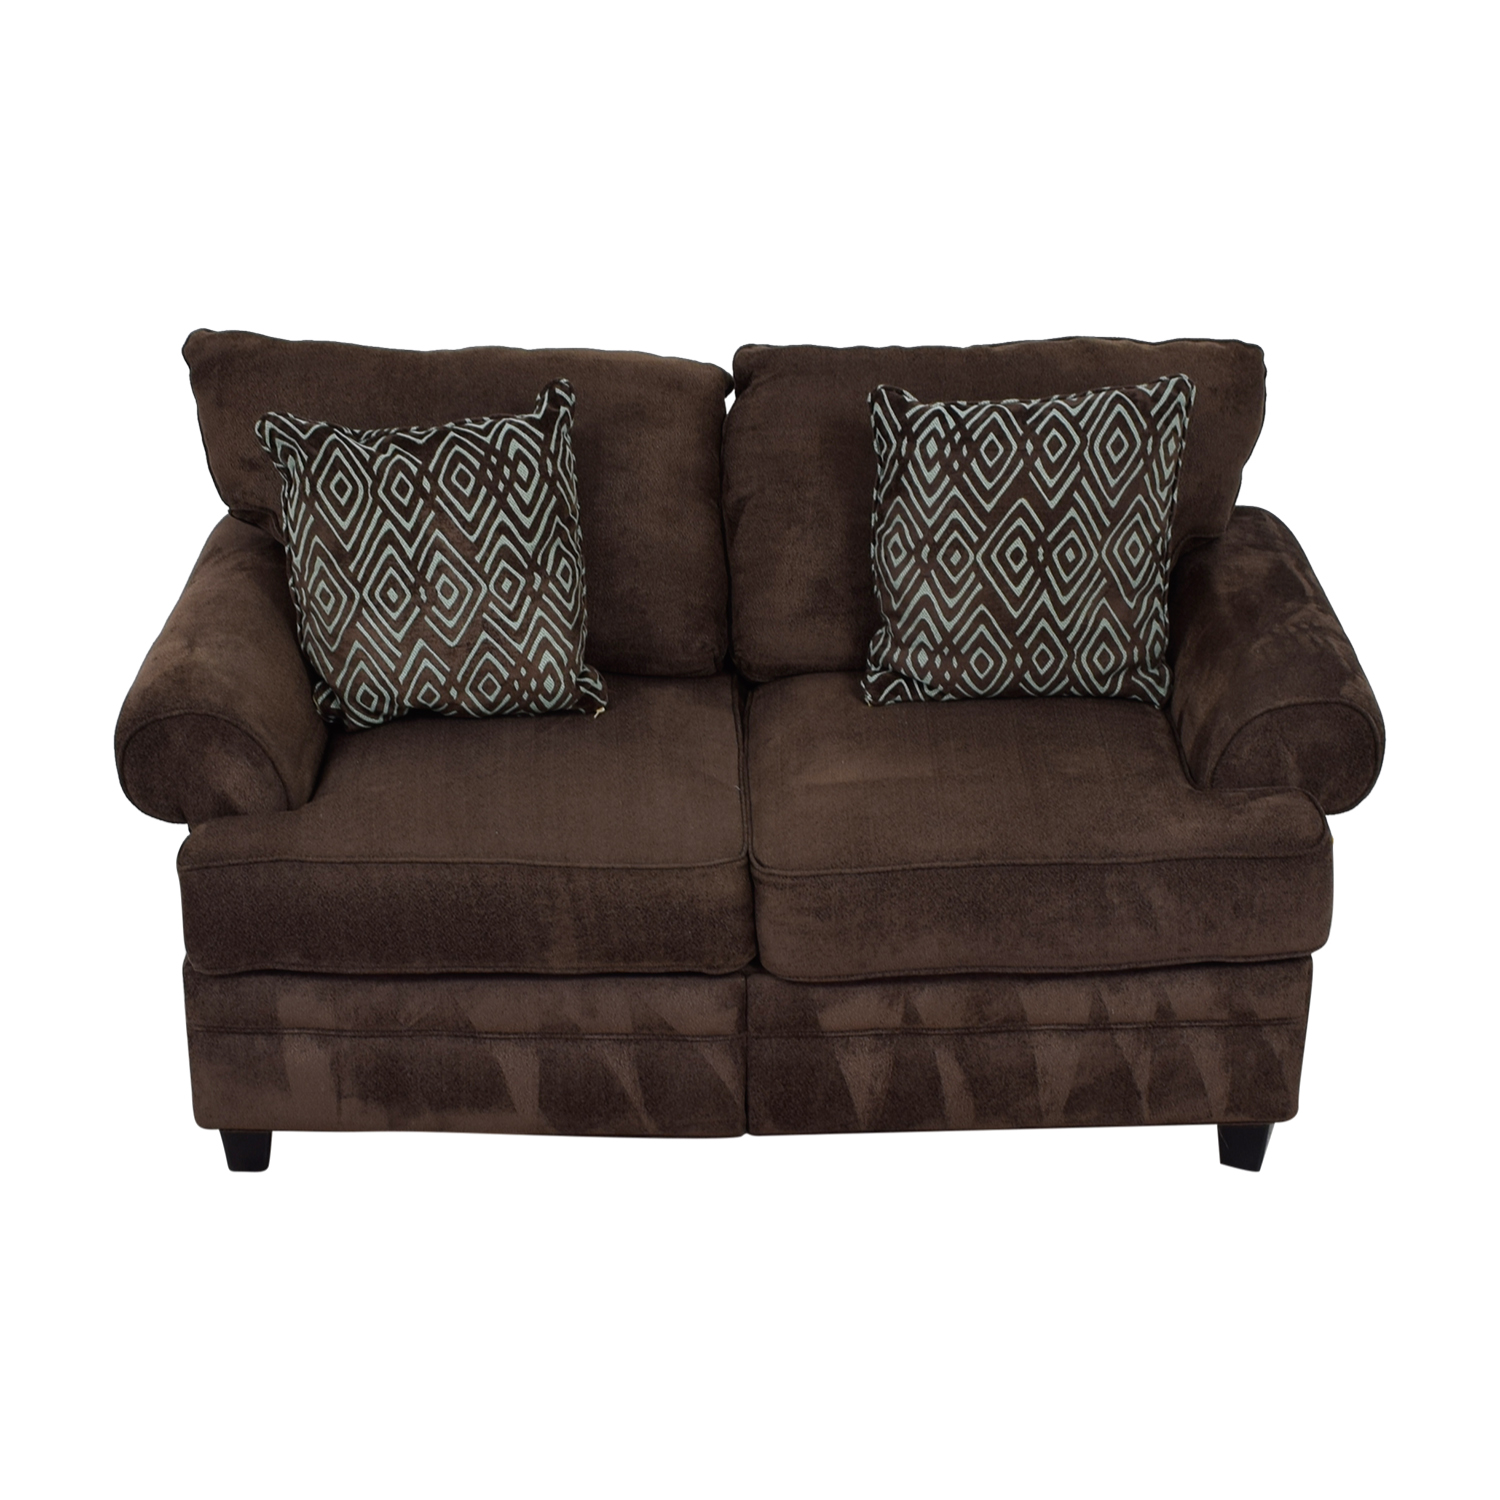 Bob's Furniture Bob's Furniture Brown Two-Cushion Love Seat dimensions